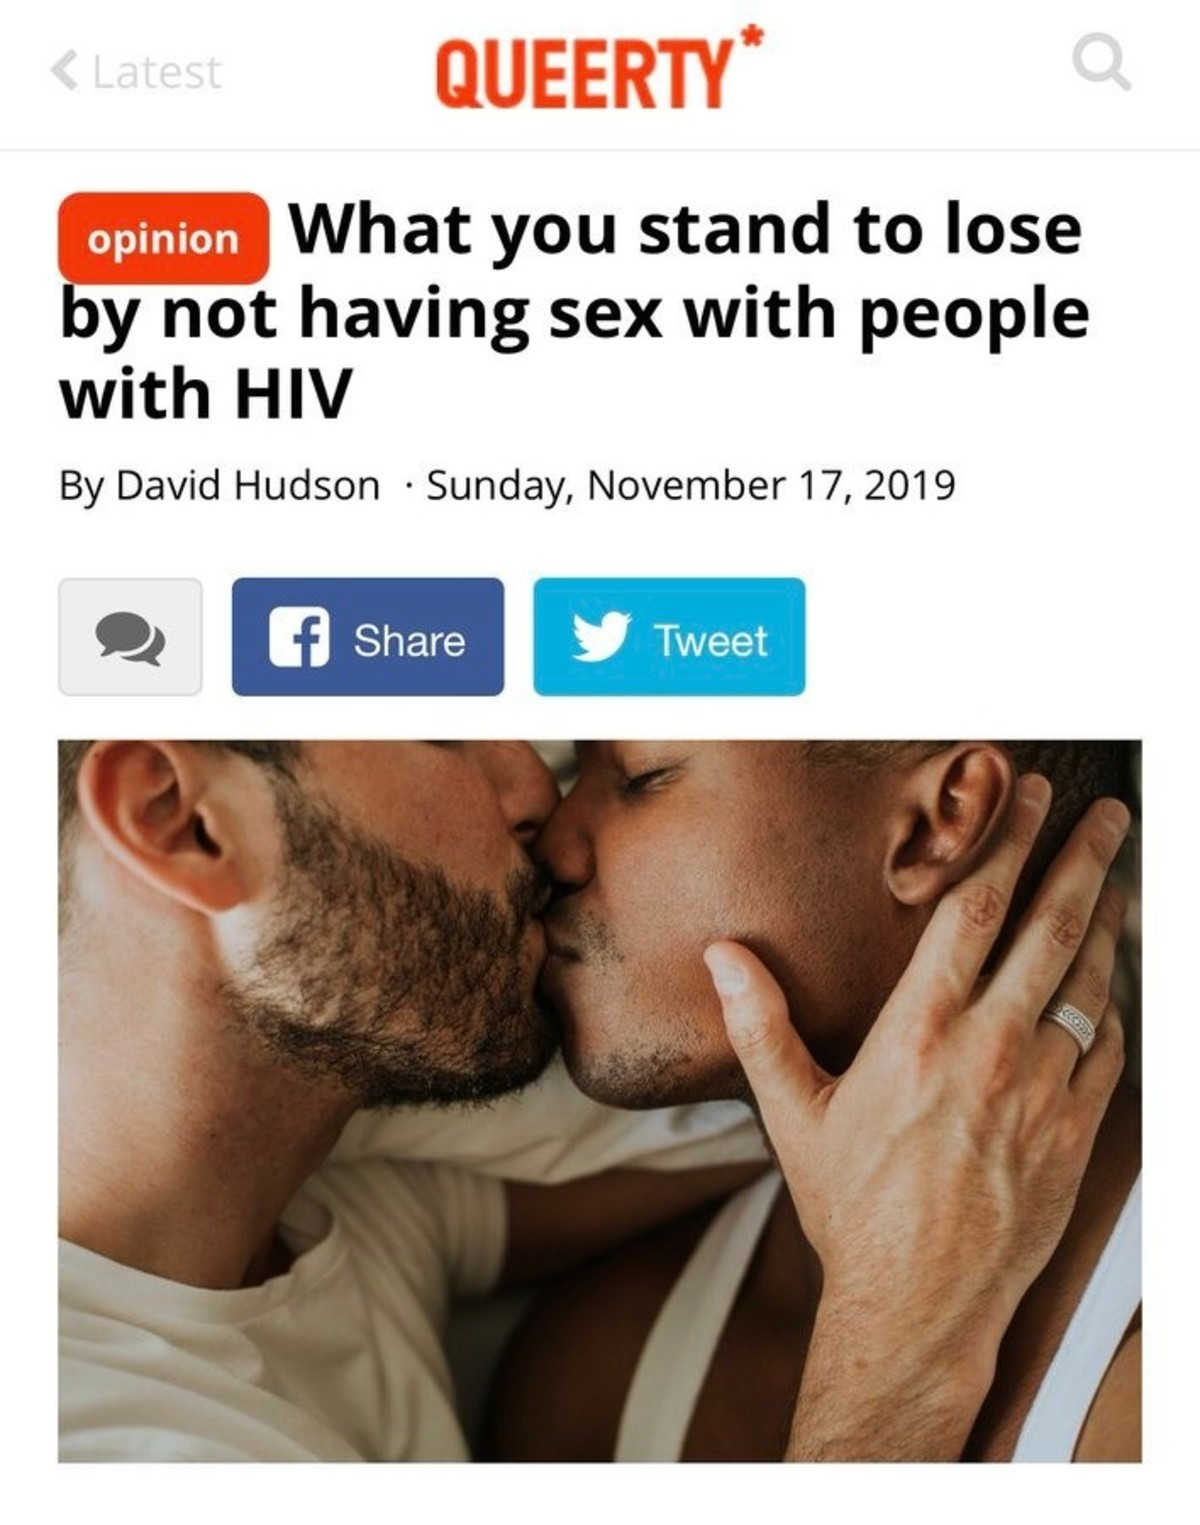 """dasd. .. """"Bad opinion irrelevant to my life shared by opinion-driven blog exclusively serving gay content and literally called 'Queerty'"""" This article is writt"""